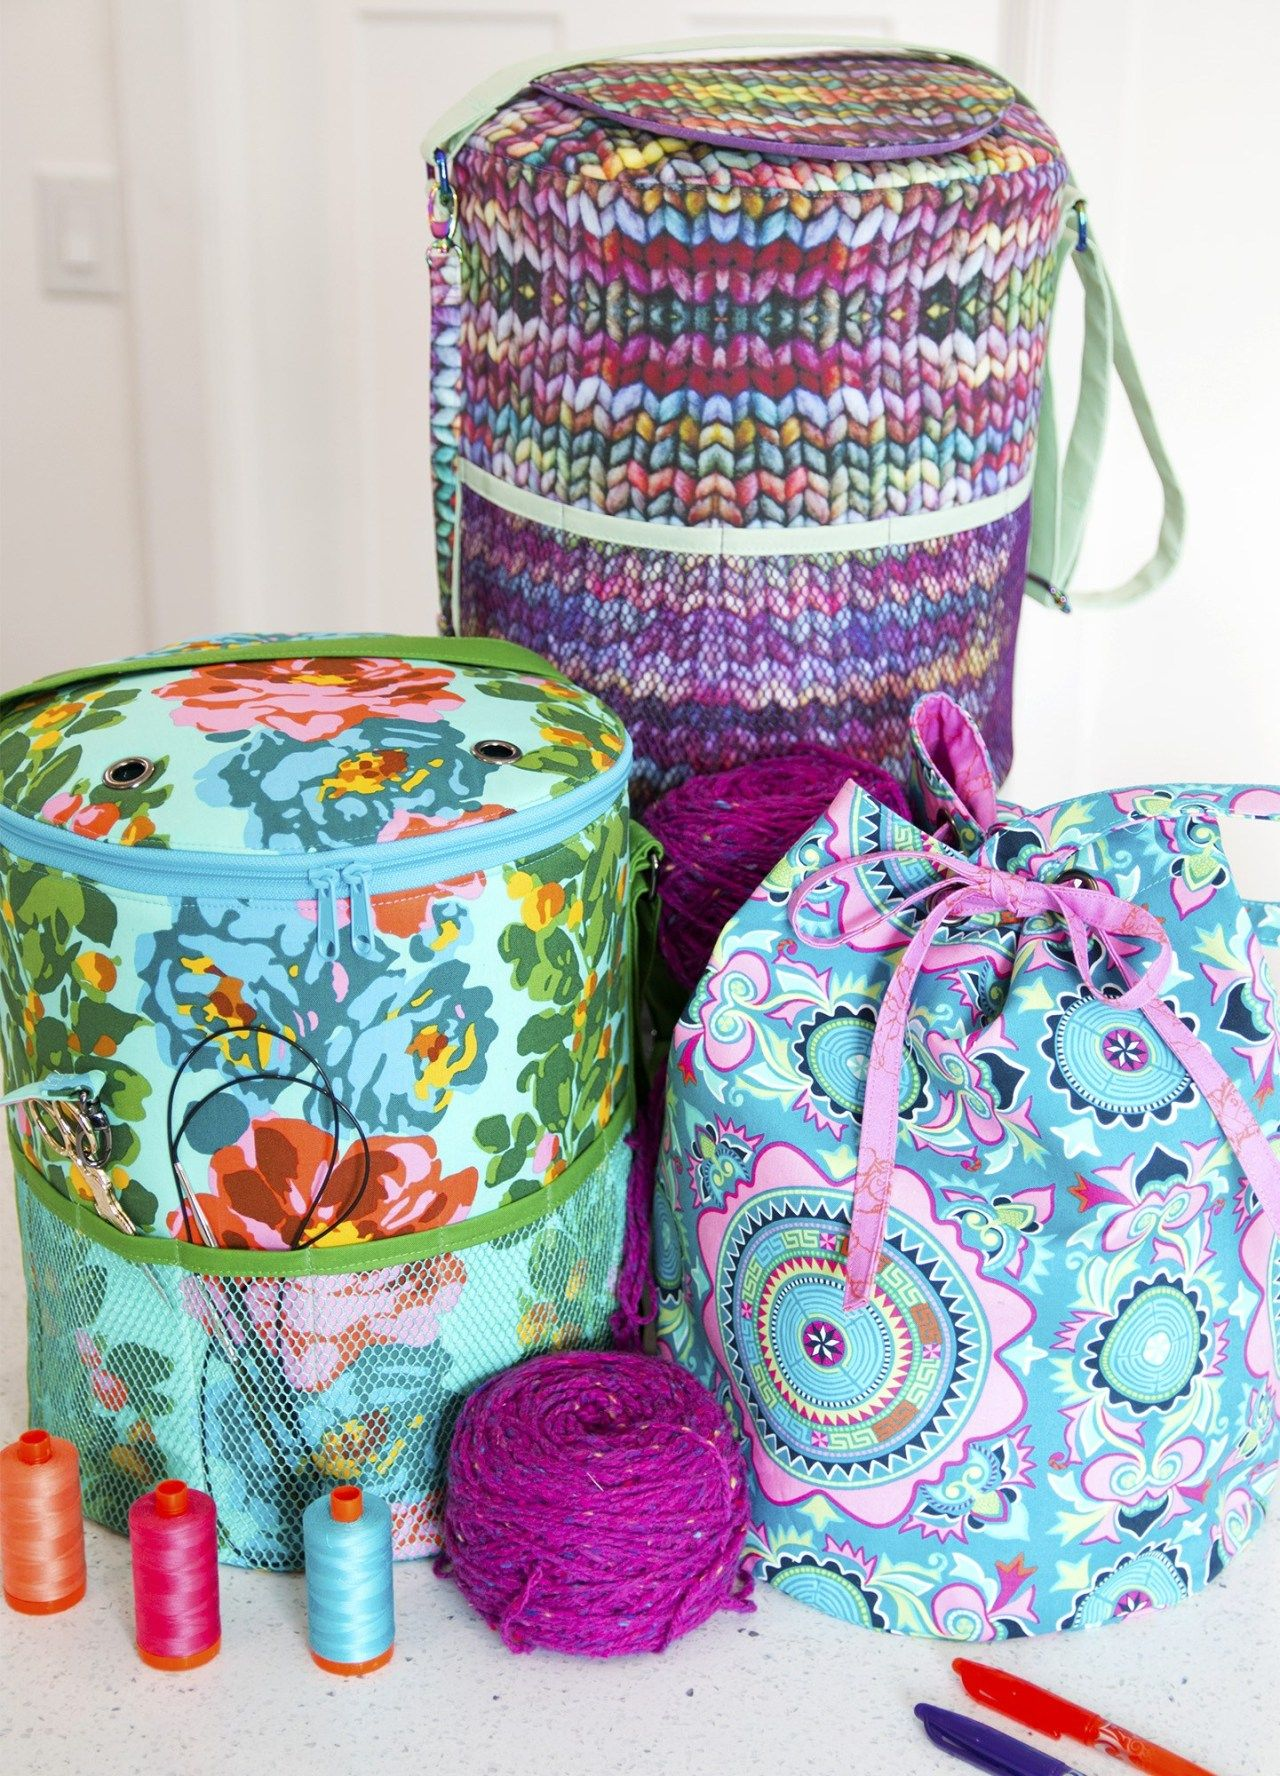 Yarn Minder Bag | Bag patterns to sew, Crochet projects ...